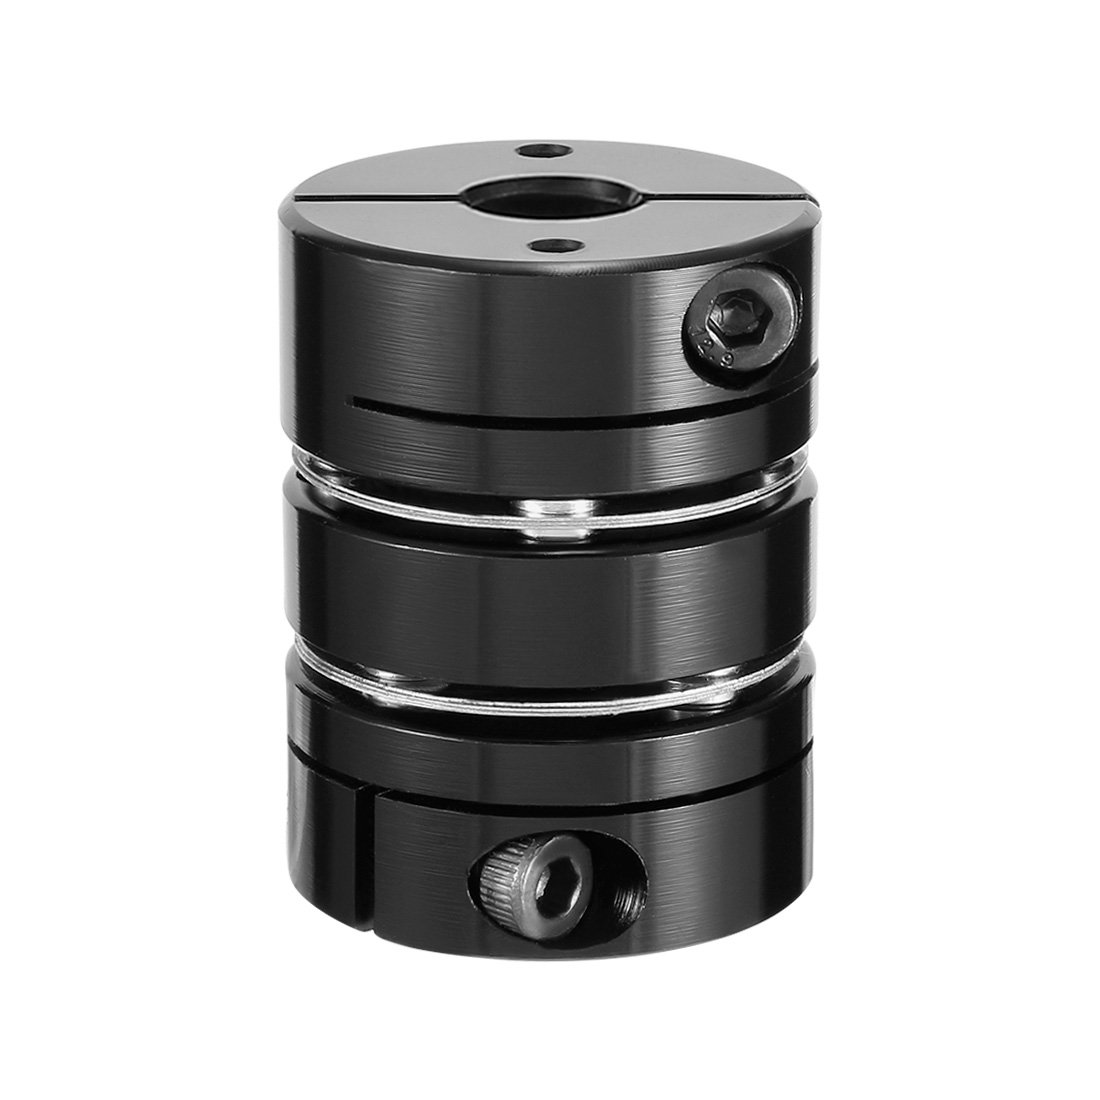 sourcingmap 6mmx11mm Clamp Tight Motor Shaft 2 Diaphragm Coupling Coupler a17110100ux0184